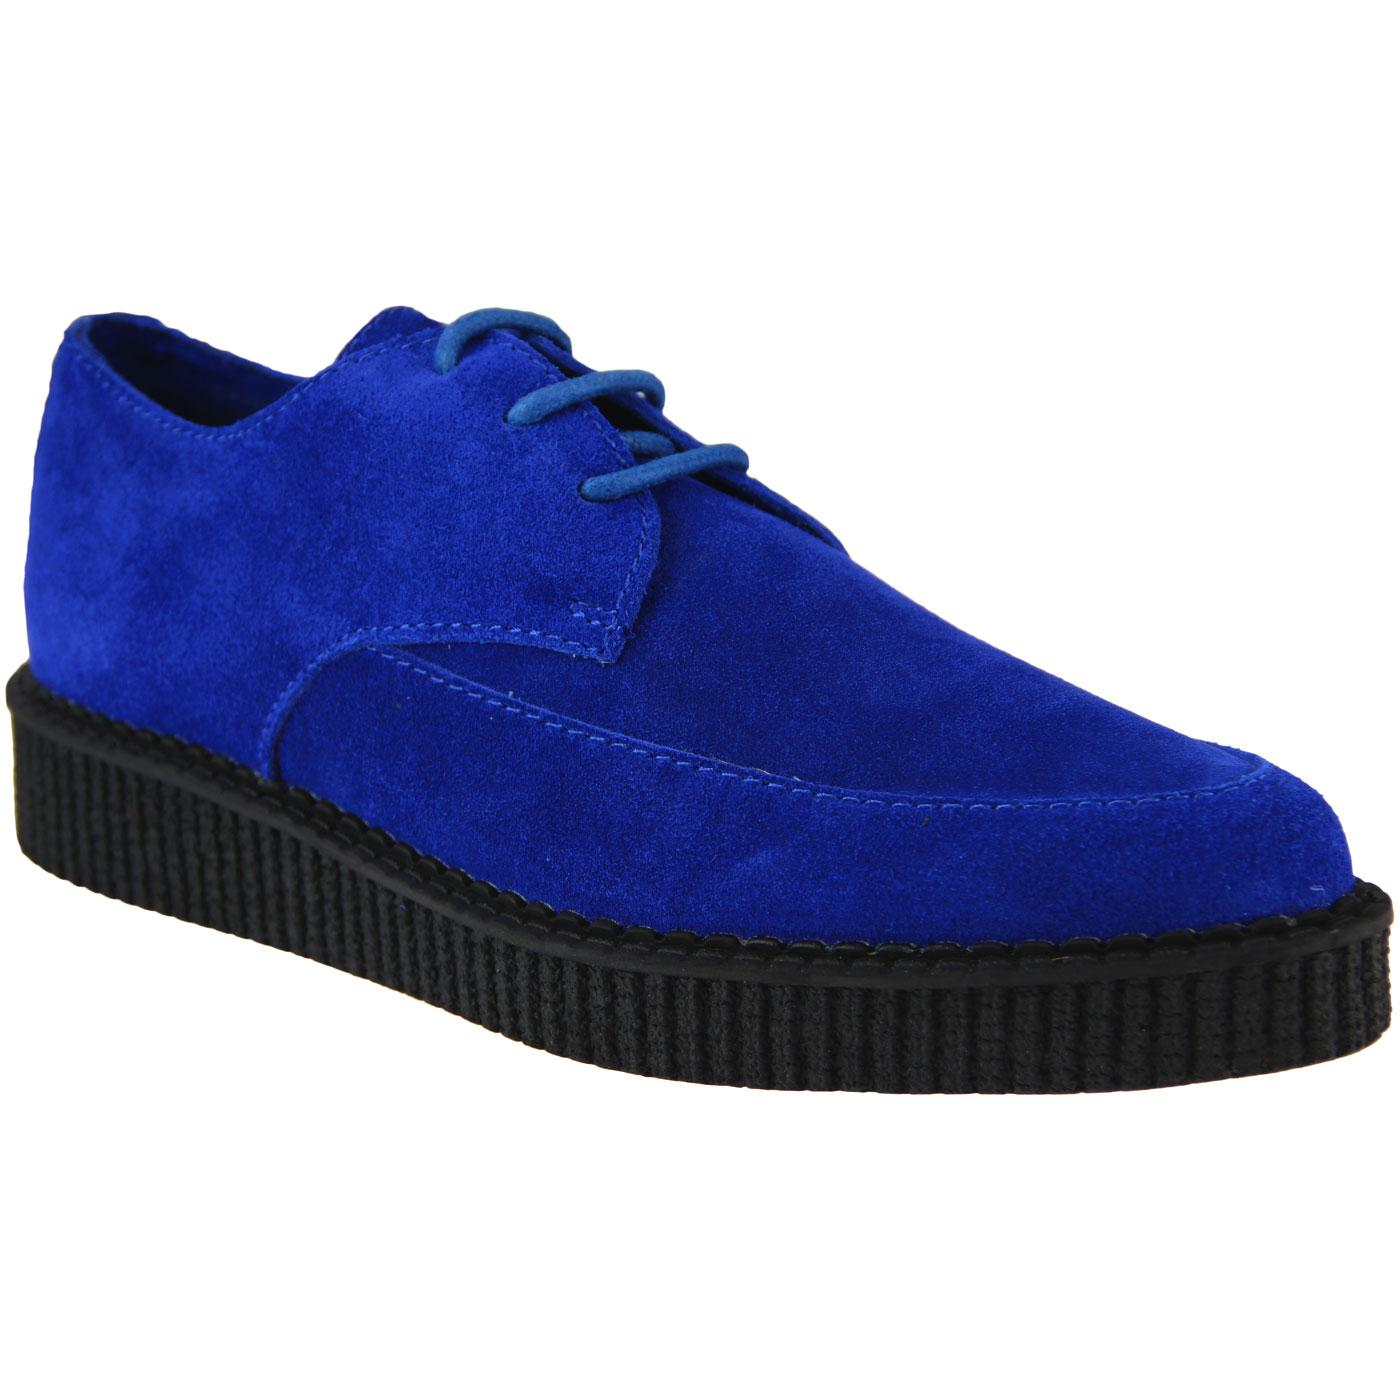 Stray Cat MADCAP ENGLAND Retro Blue Suede Creepers